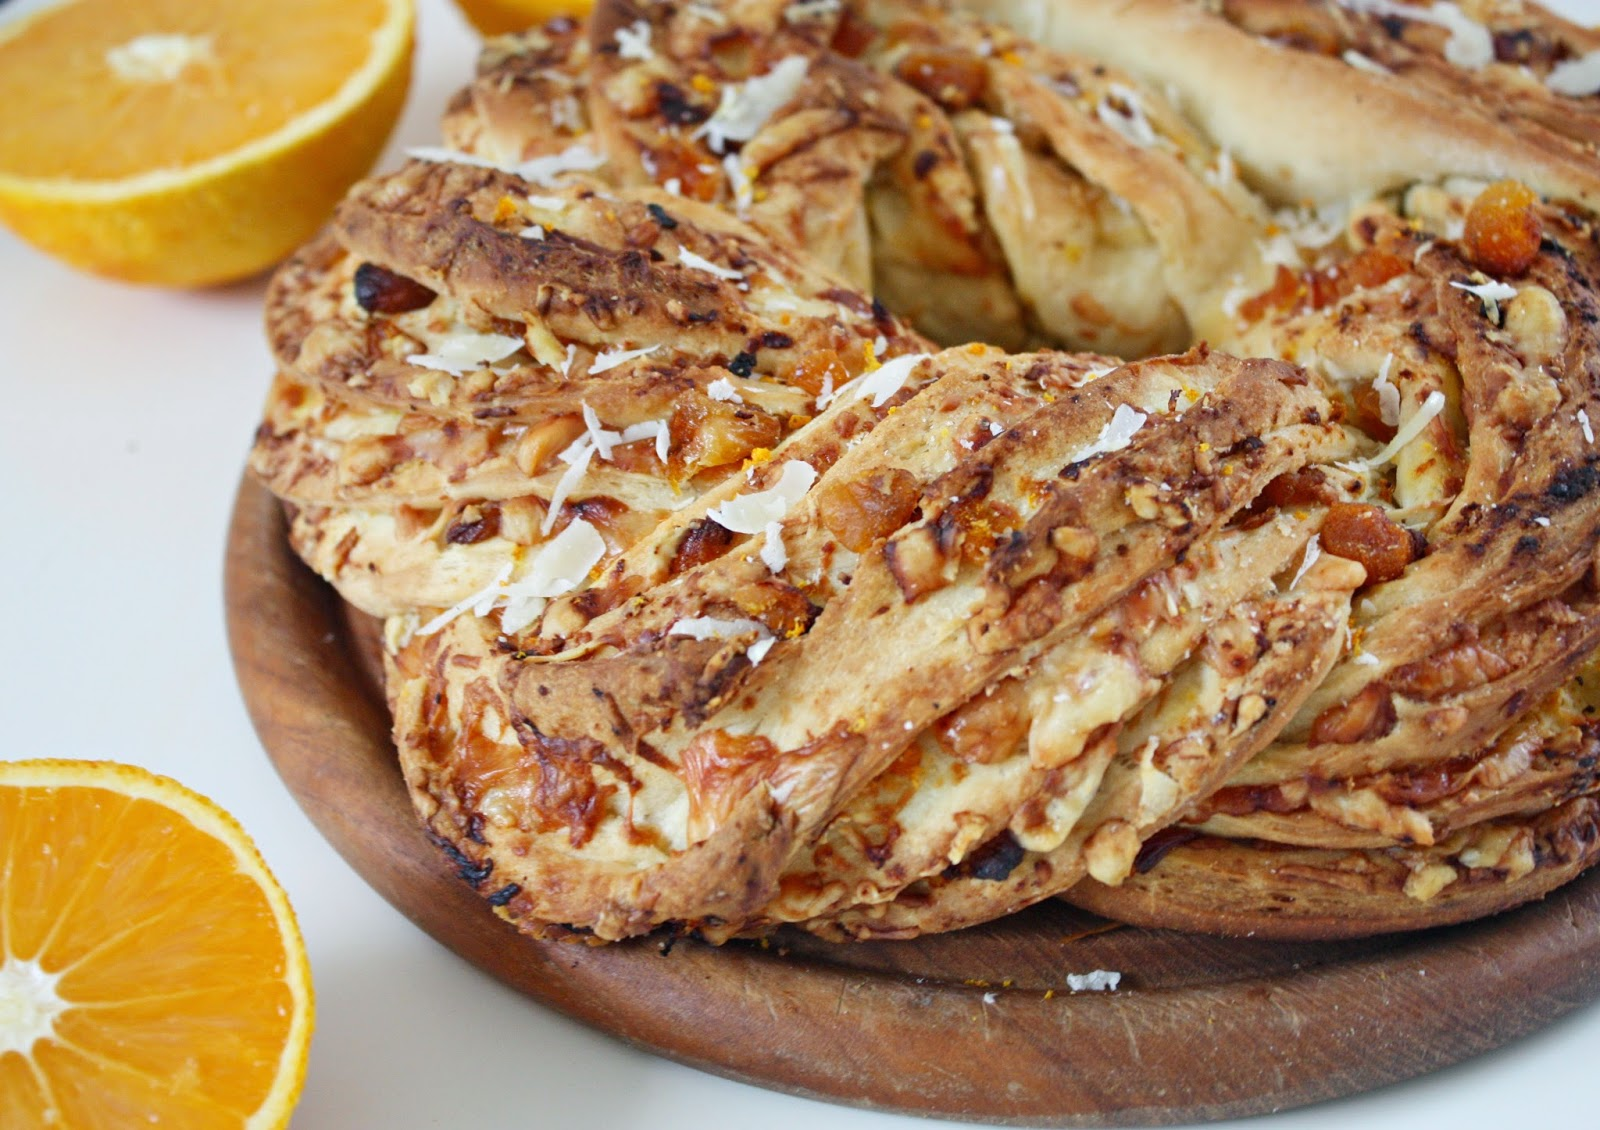 Apricot & Orange Bread with Parmesan